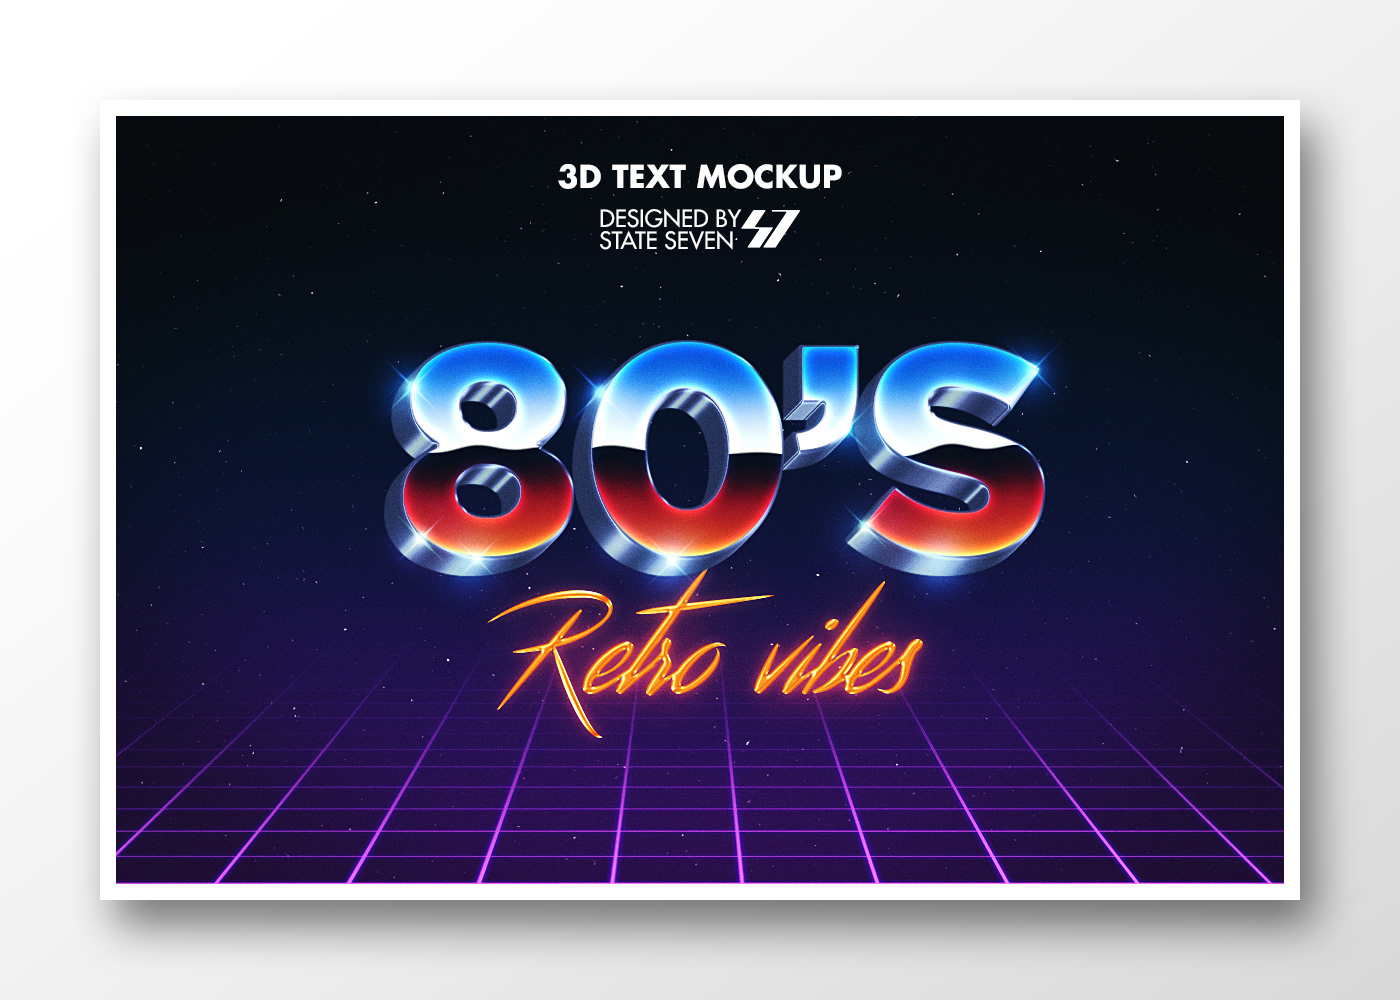 graphic design  text effect Text Mockup free mockup  3D text Free Template 3d text effect retro style 80s text effect neon text effect